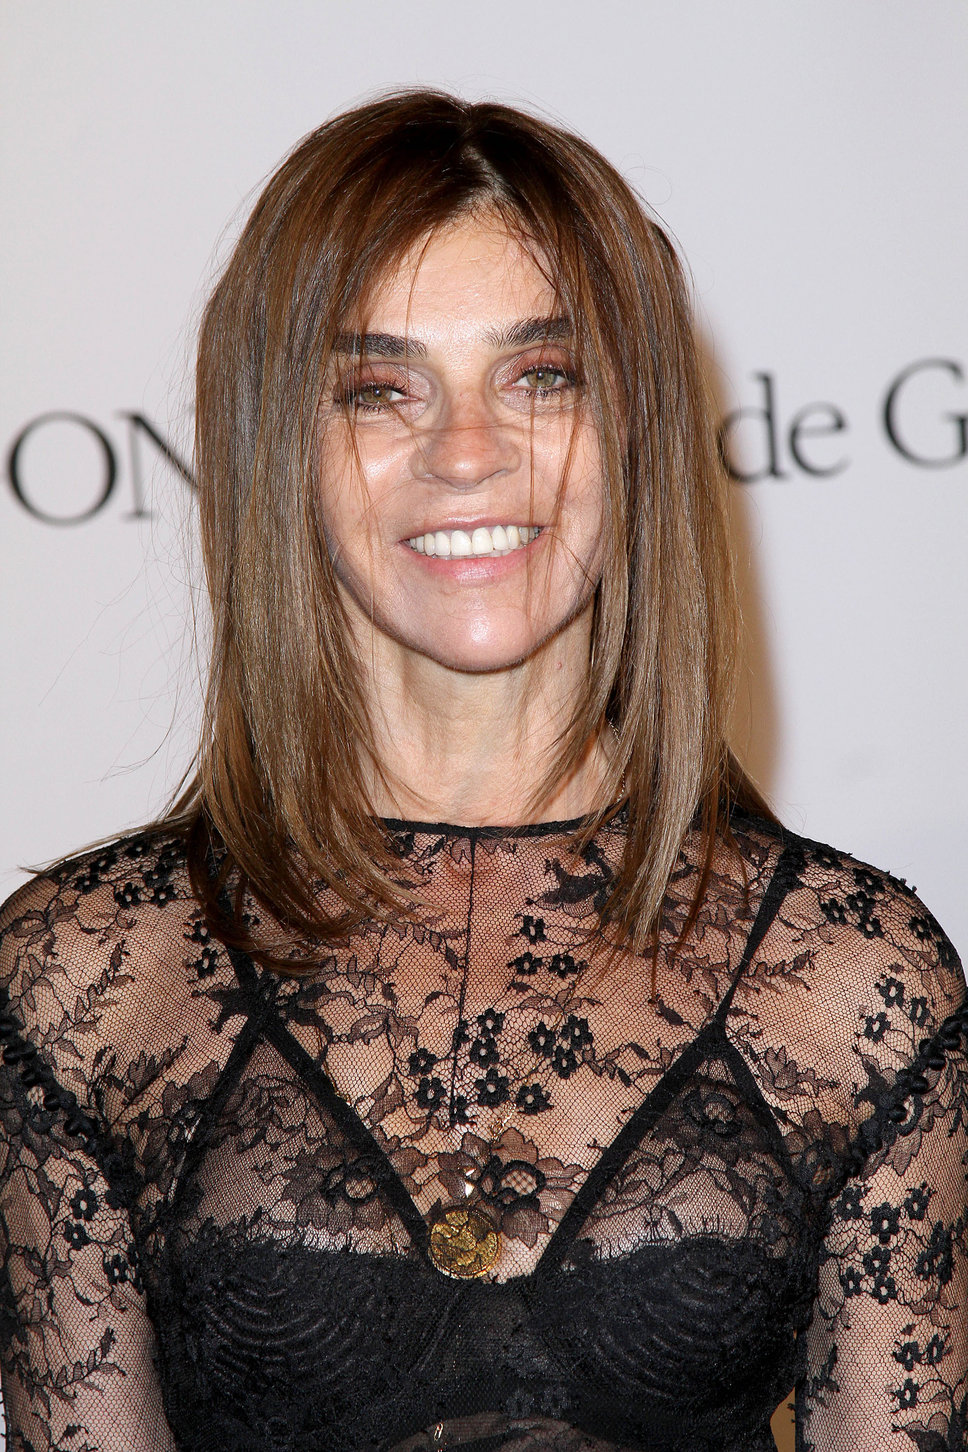 The great Carine Roitfeld.